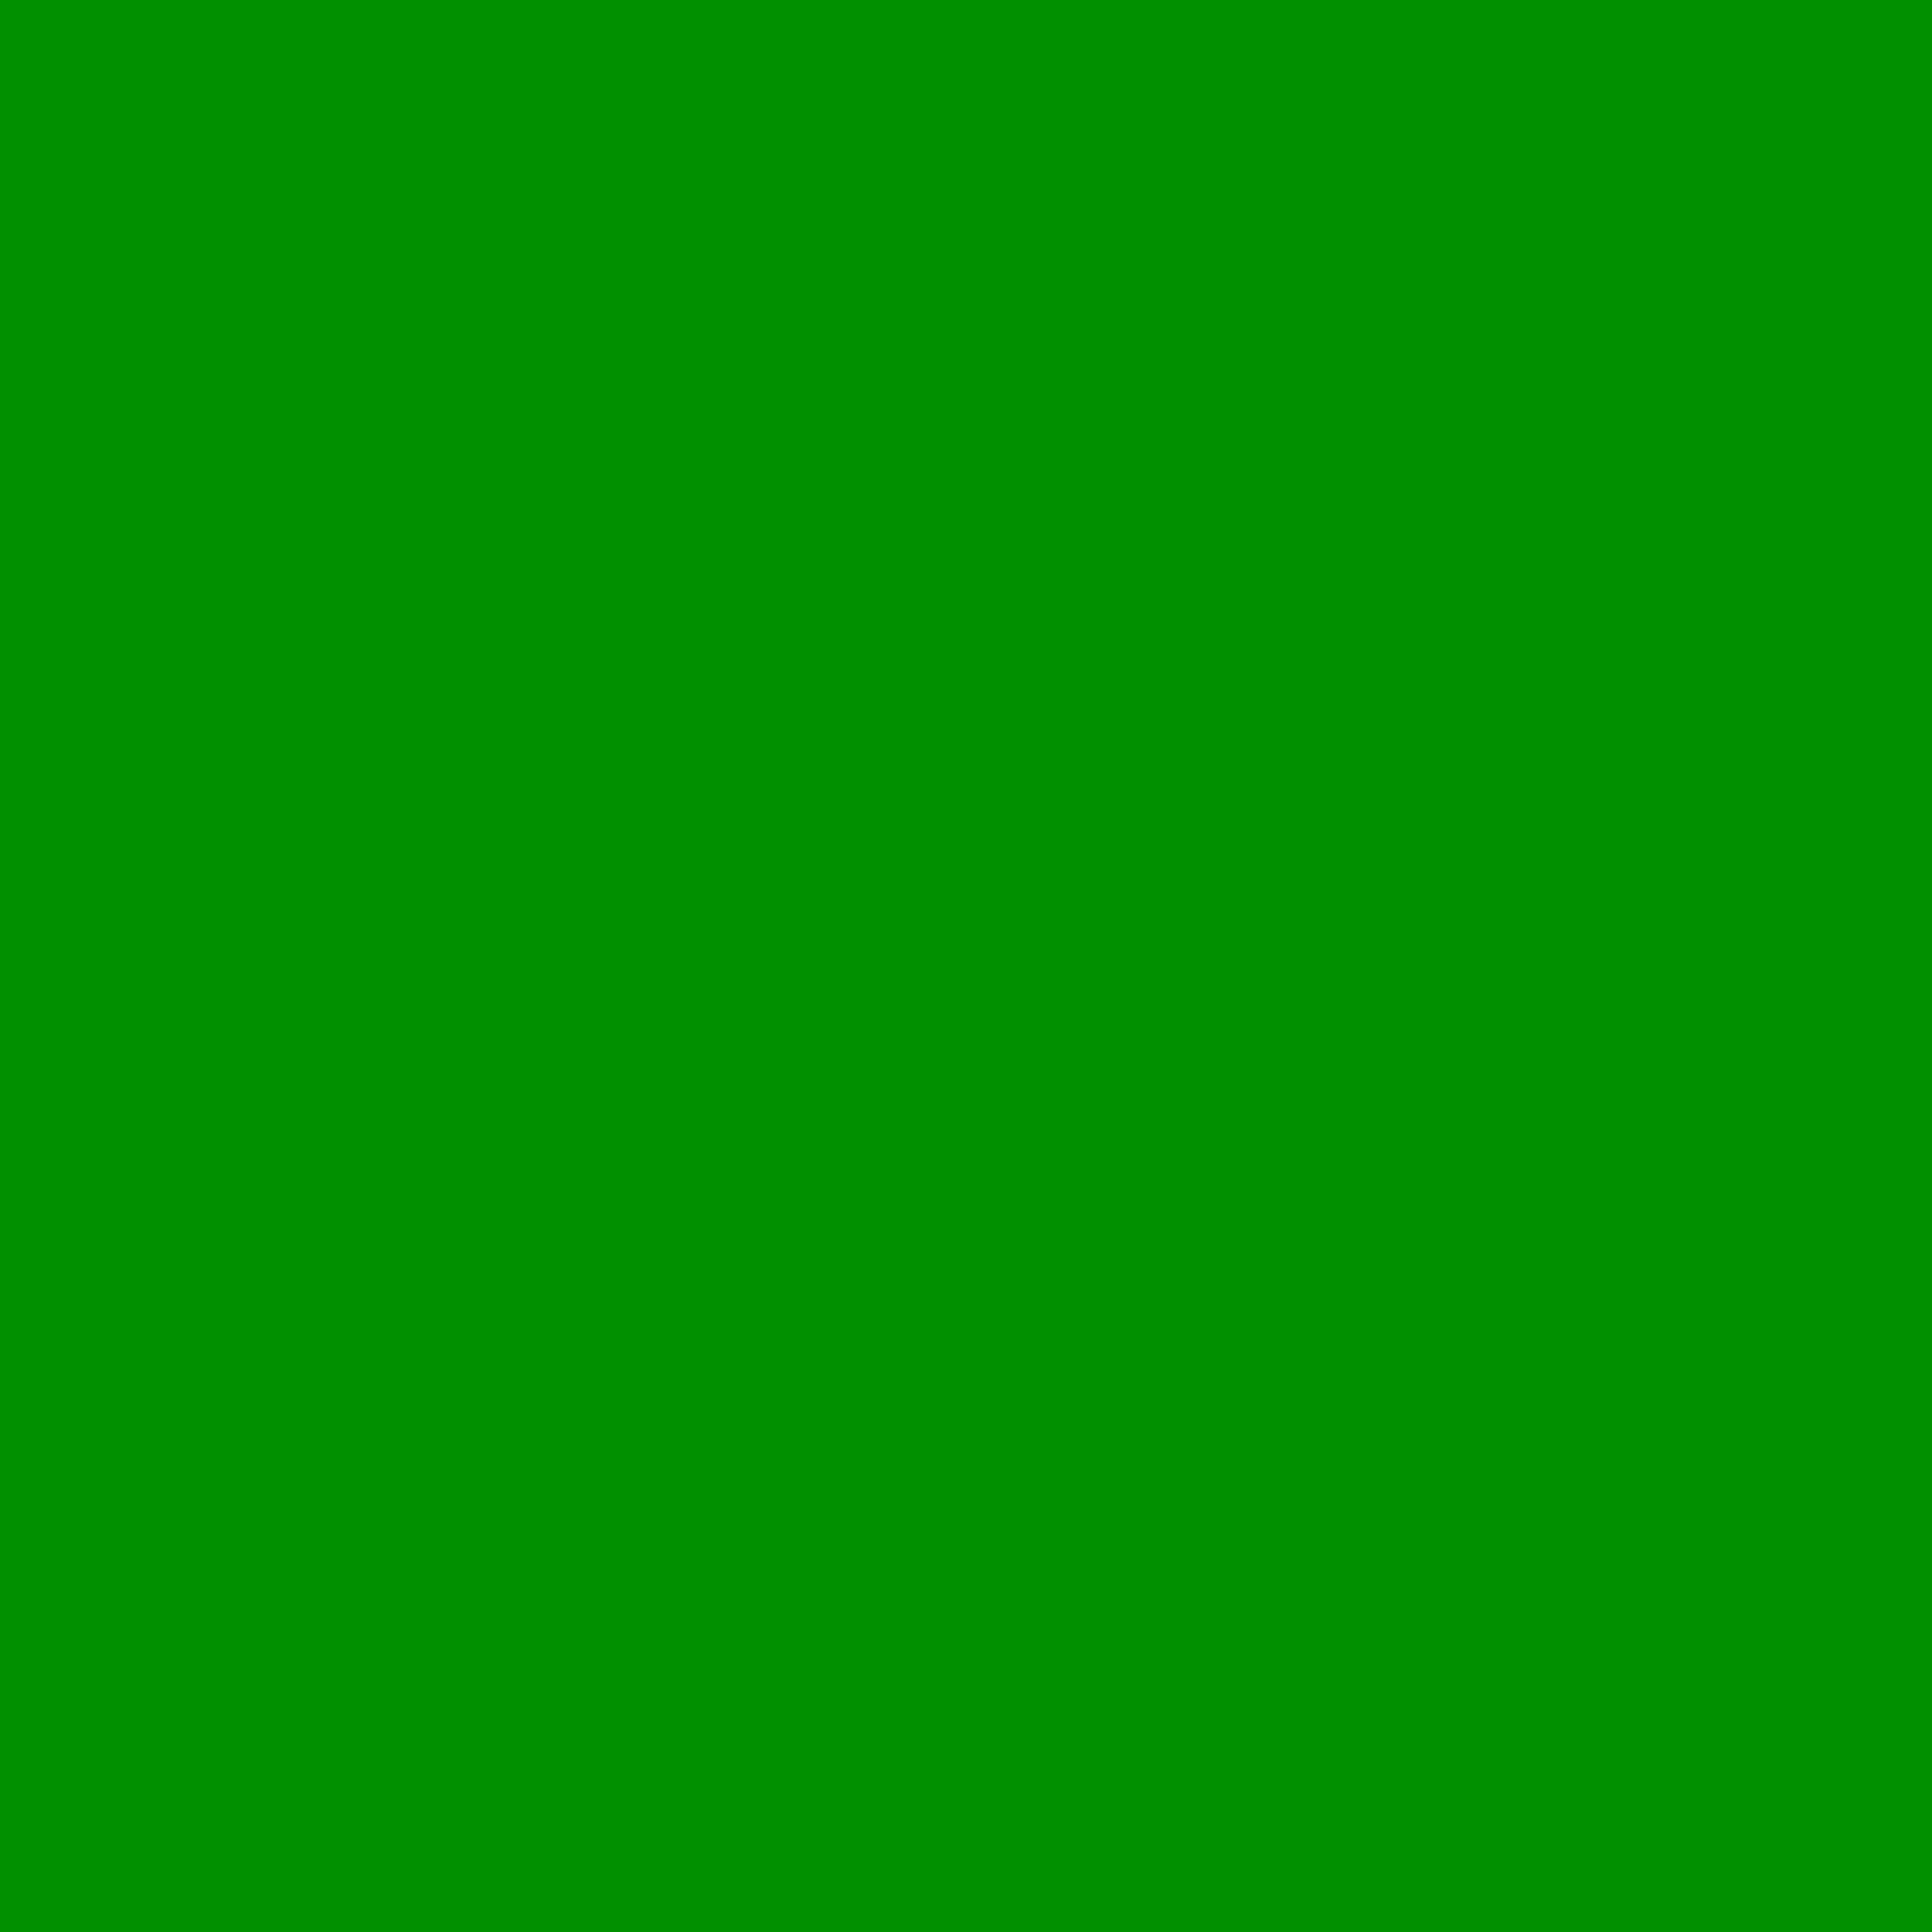 2048x2048 Islamic Green Solid Color Background